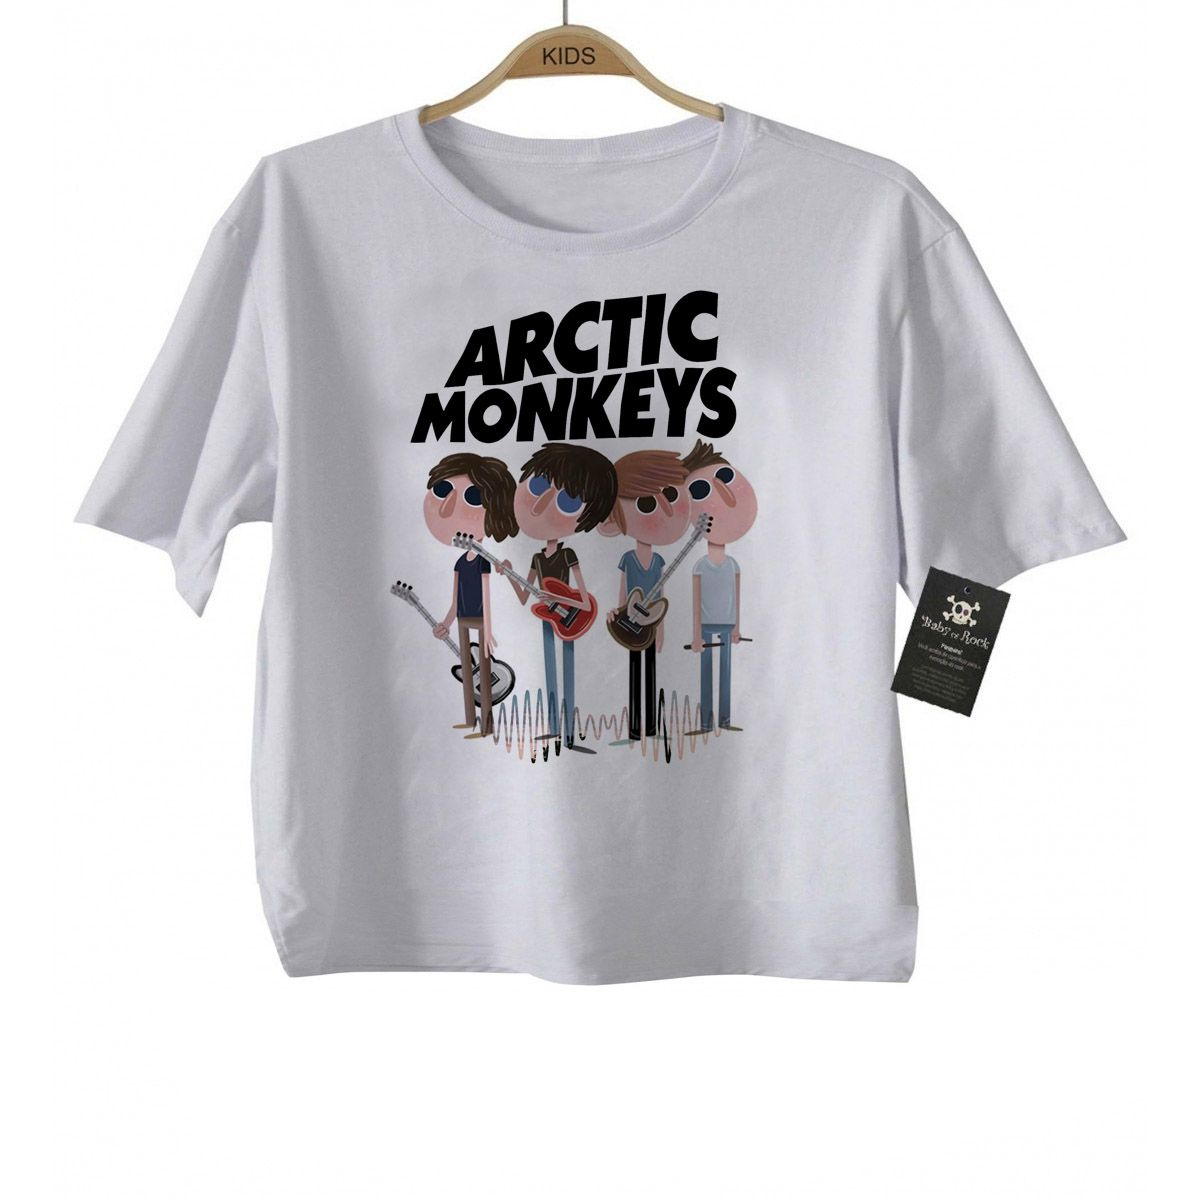 Camiseta infantil  Rock -  Arctic Monkeys -  White  - Baby Monster S/A